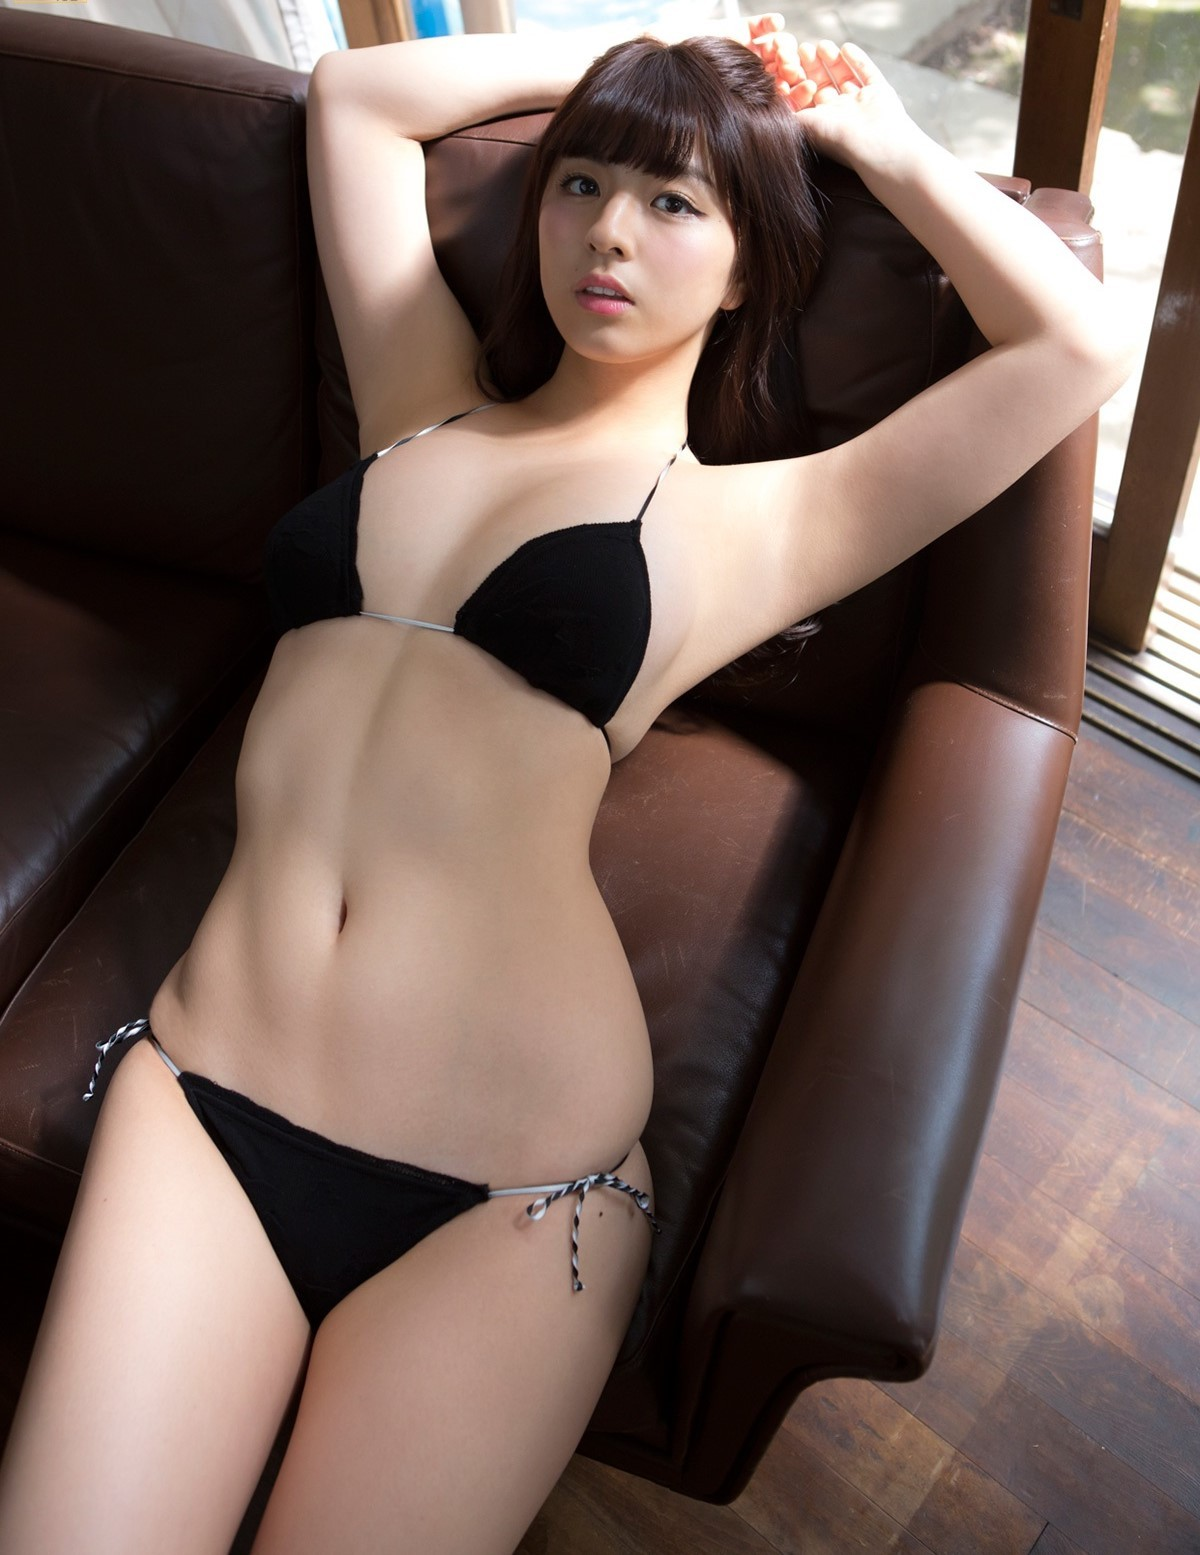 Pretty Cute Girls Of The Day (46 Photos)